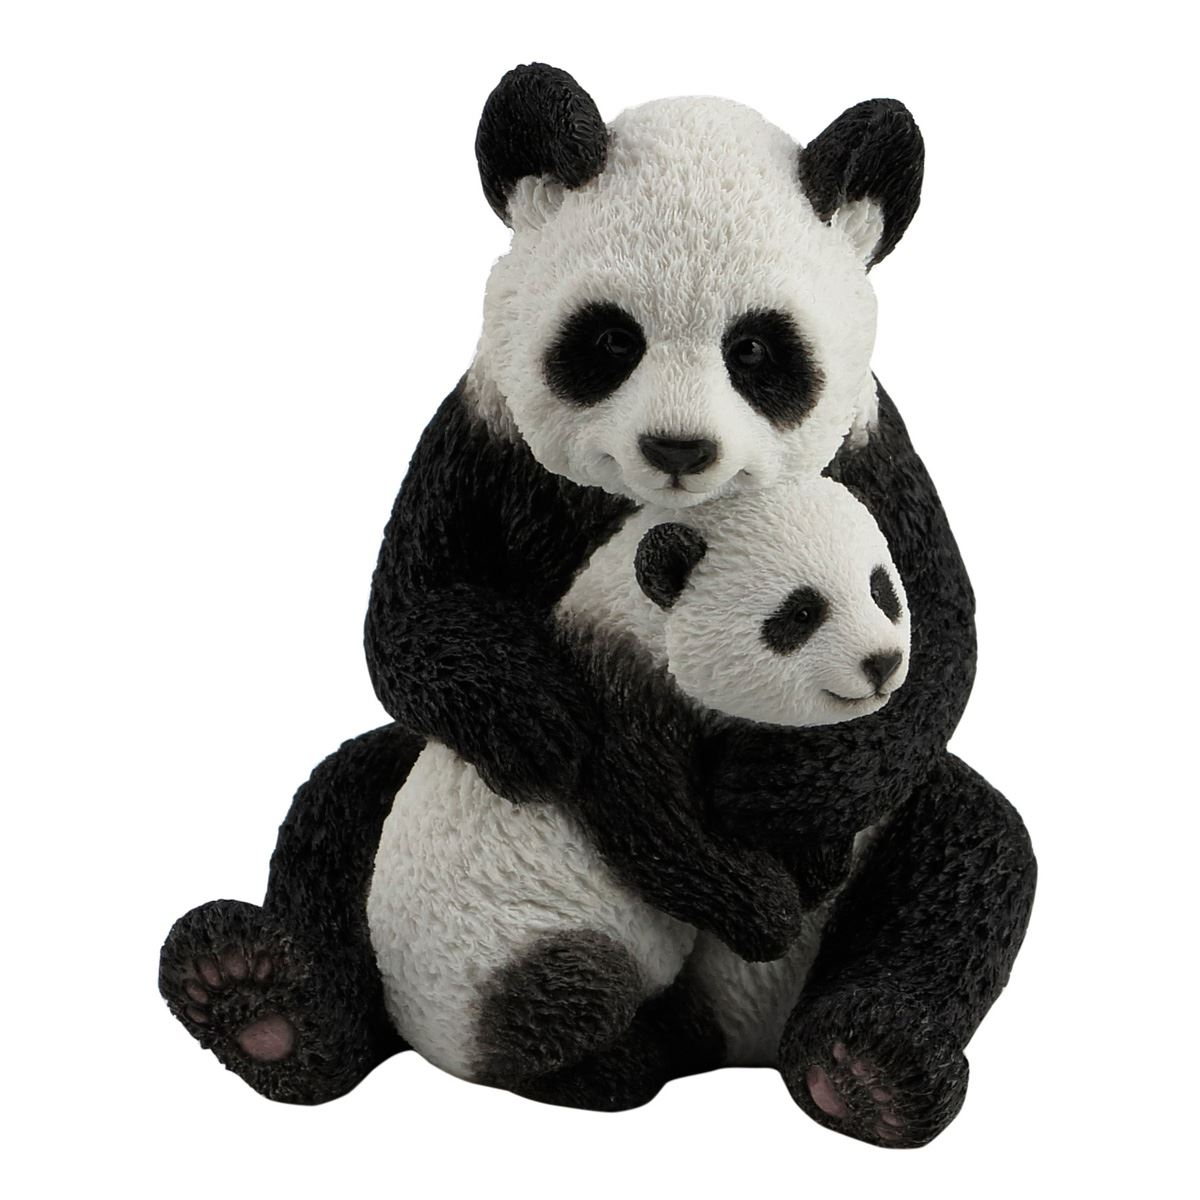 Mother panda hugging cub  - Sanborns